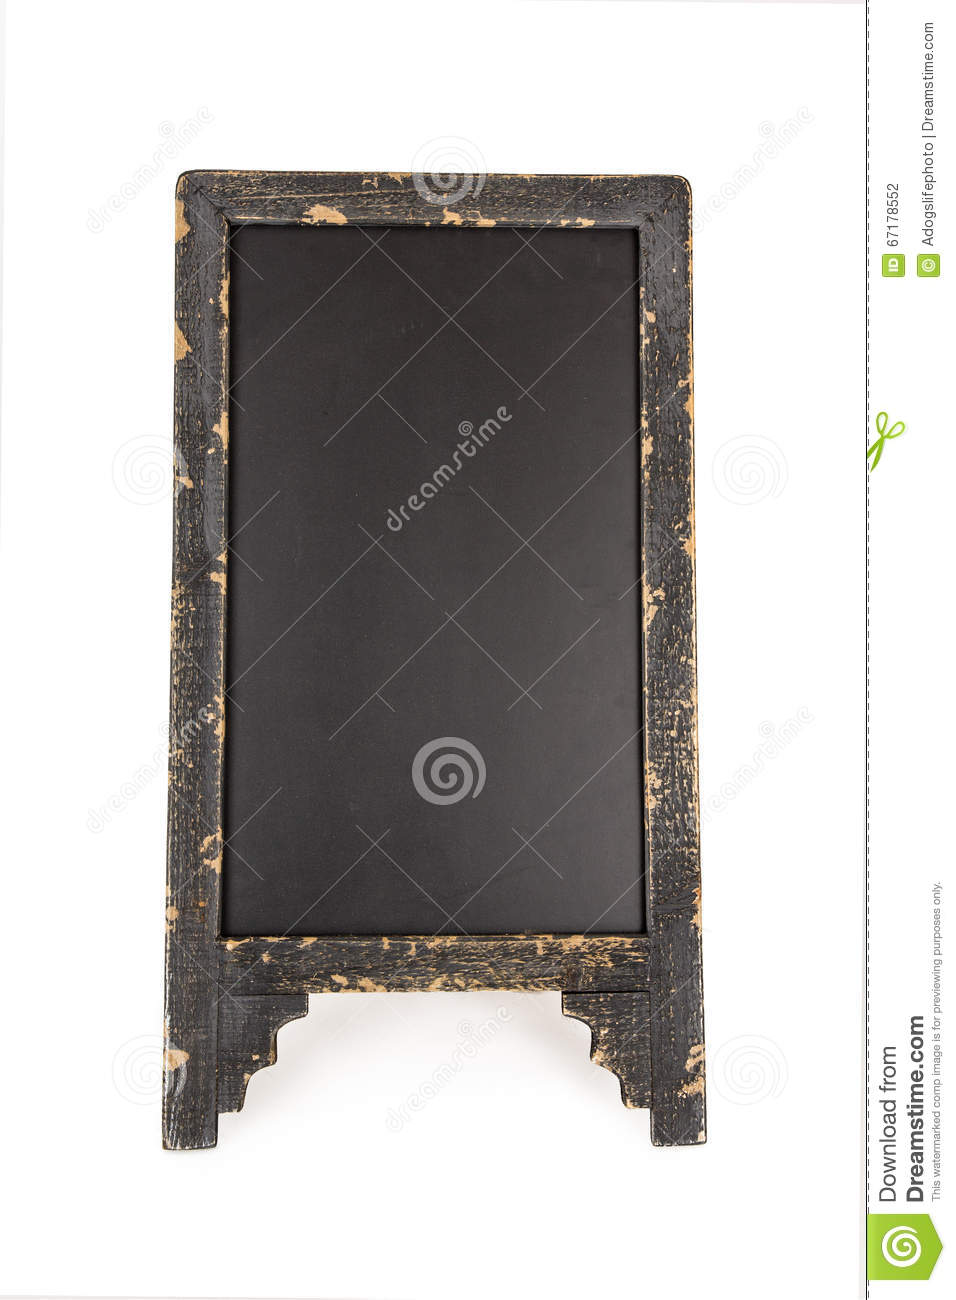 Old Chalkboard Sidewalk Sign Stock Photo Image Of